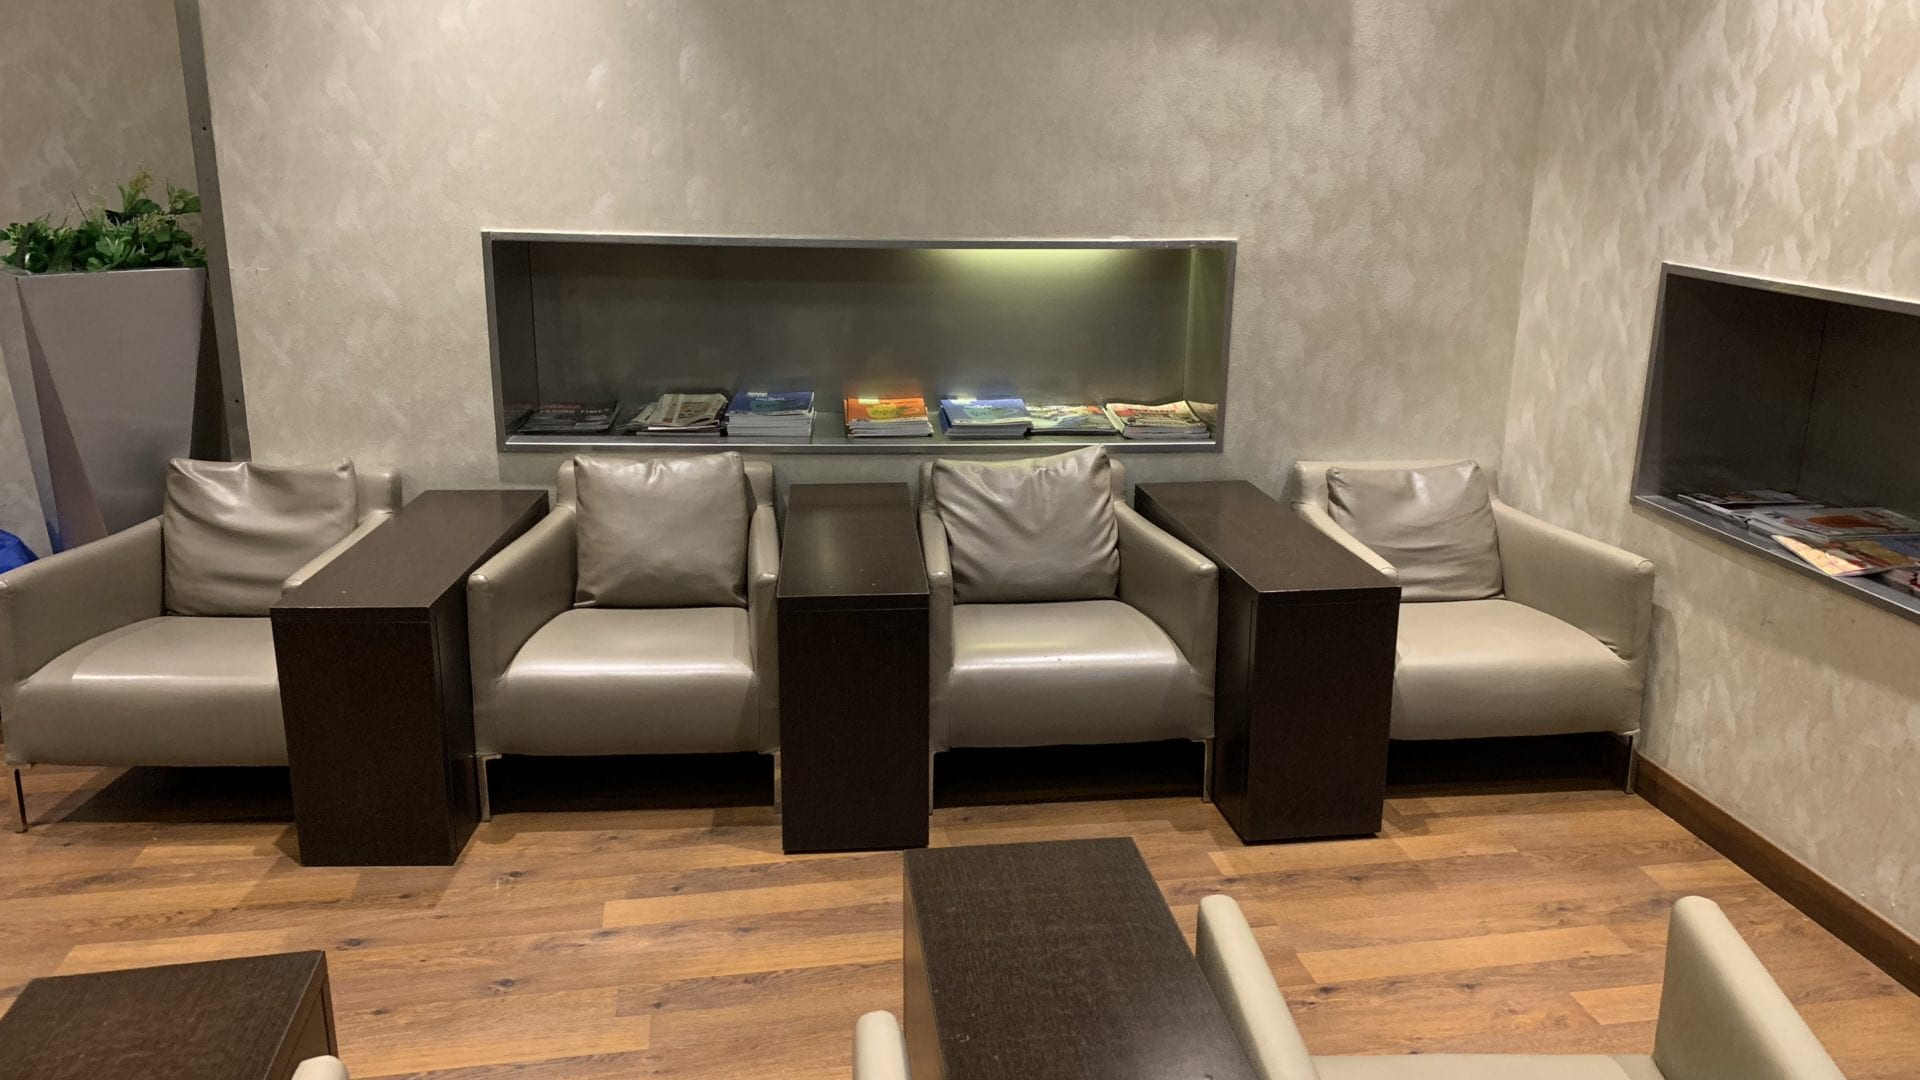 Lounge Sitze Review Gineah Lounge Kairo Die Lounge Im Test